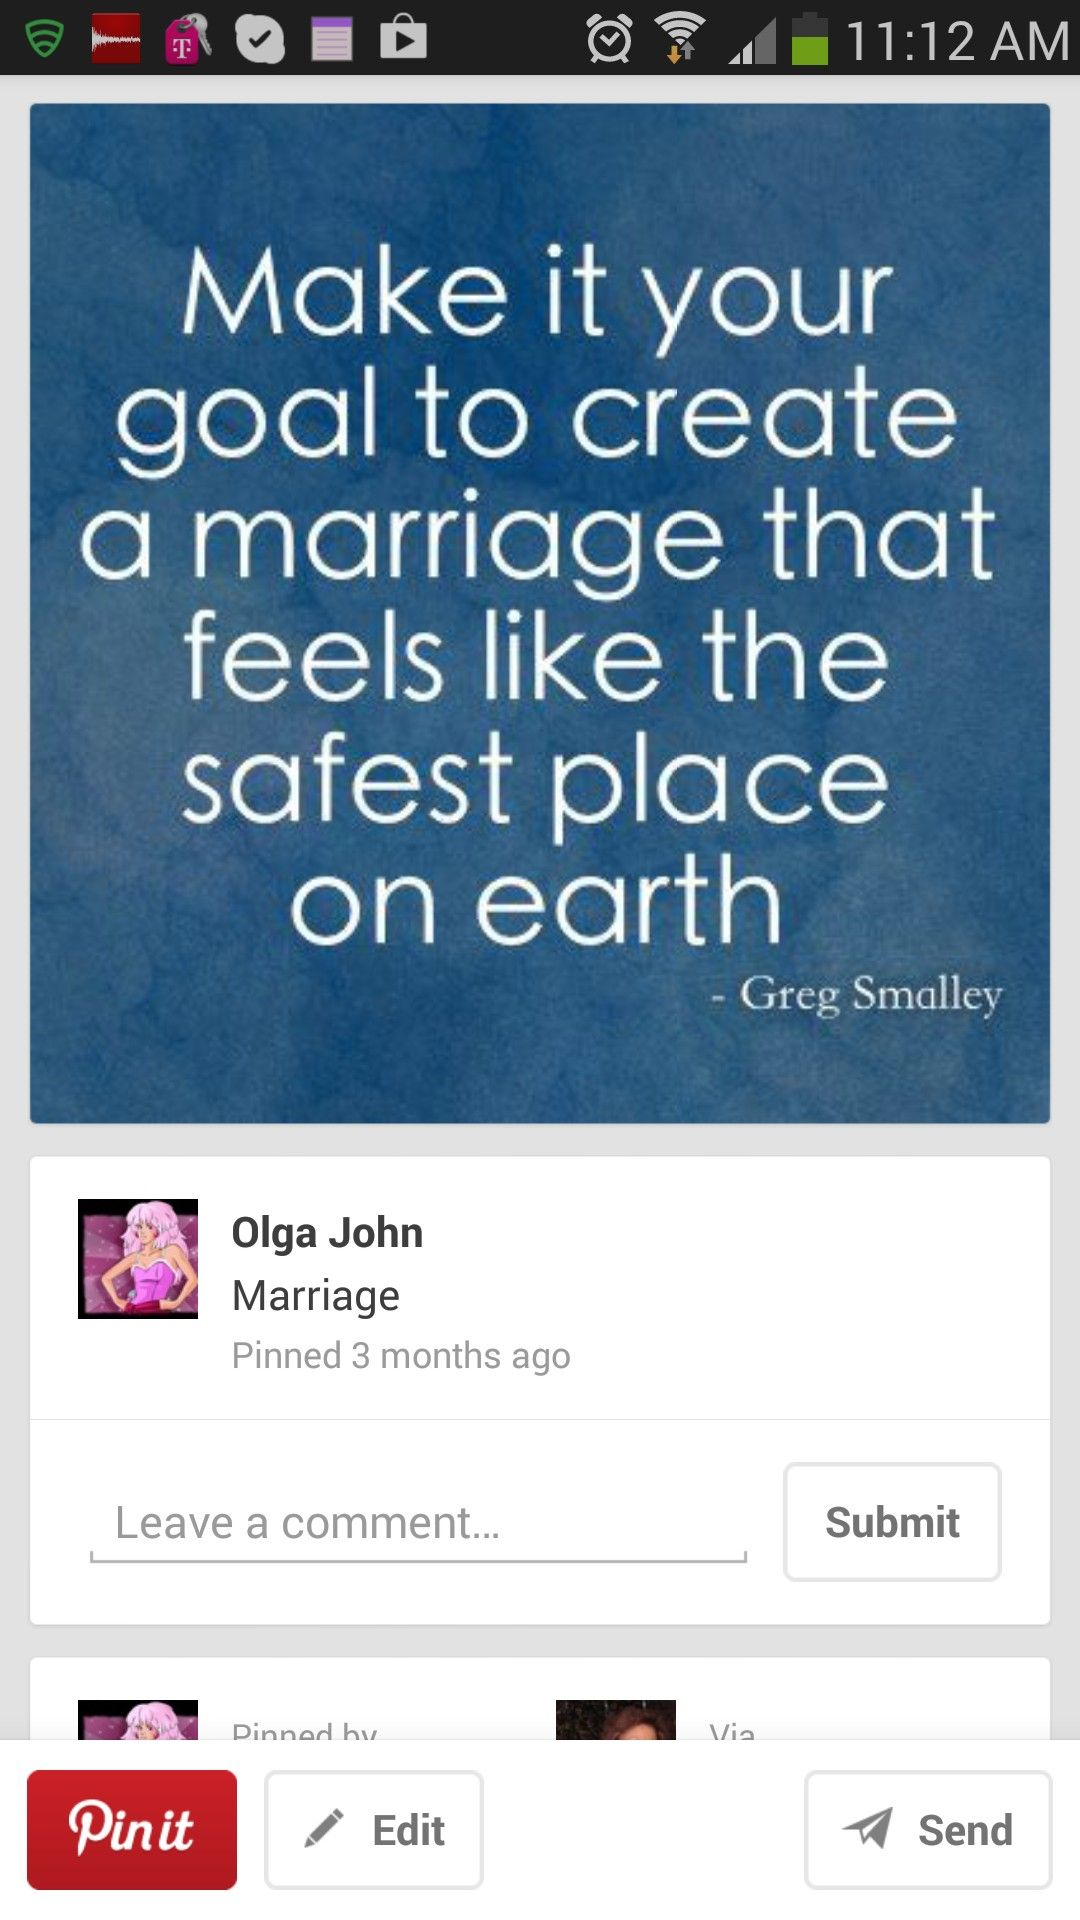 Pin by Olga John on Marriage Marriage, Make it yourself